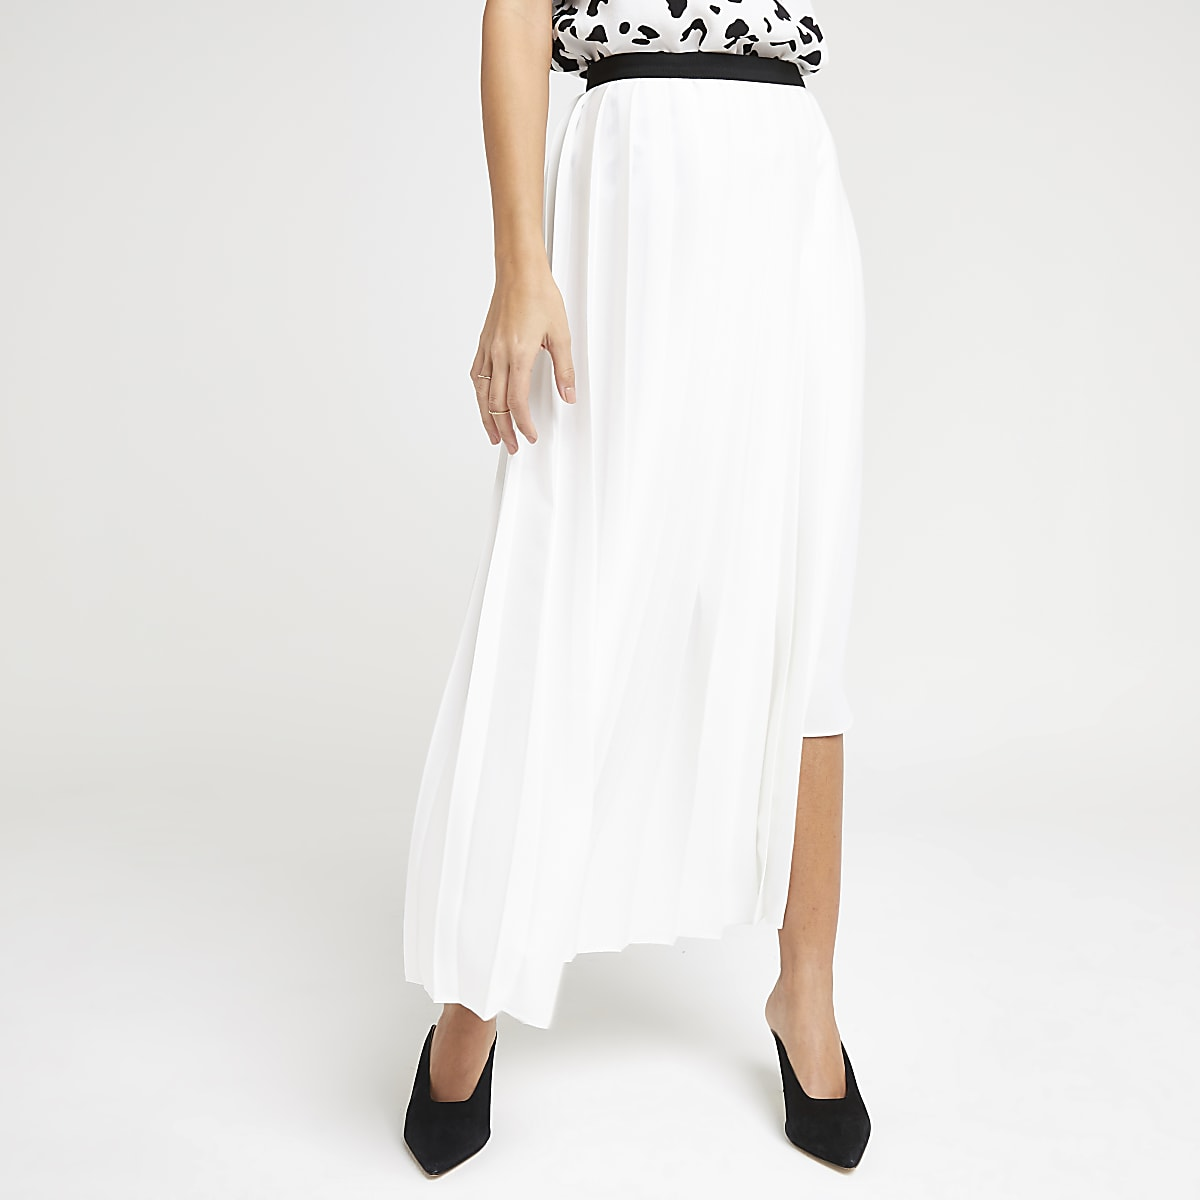 White pleated midi skirt